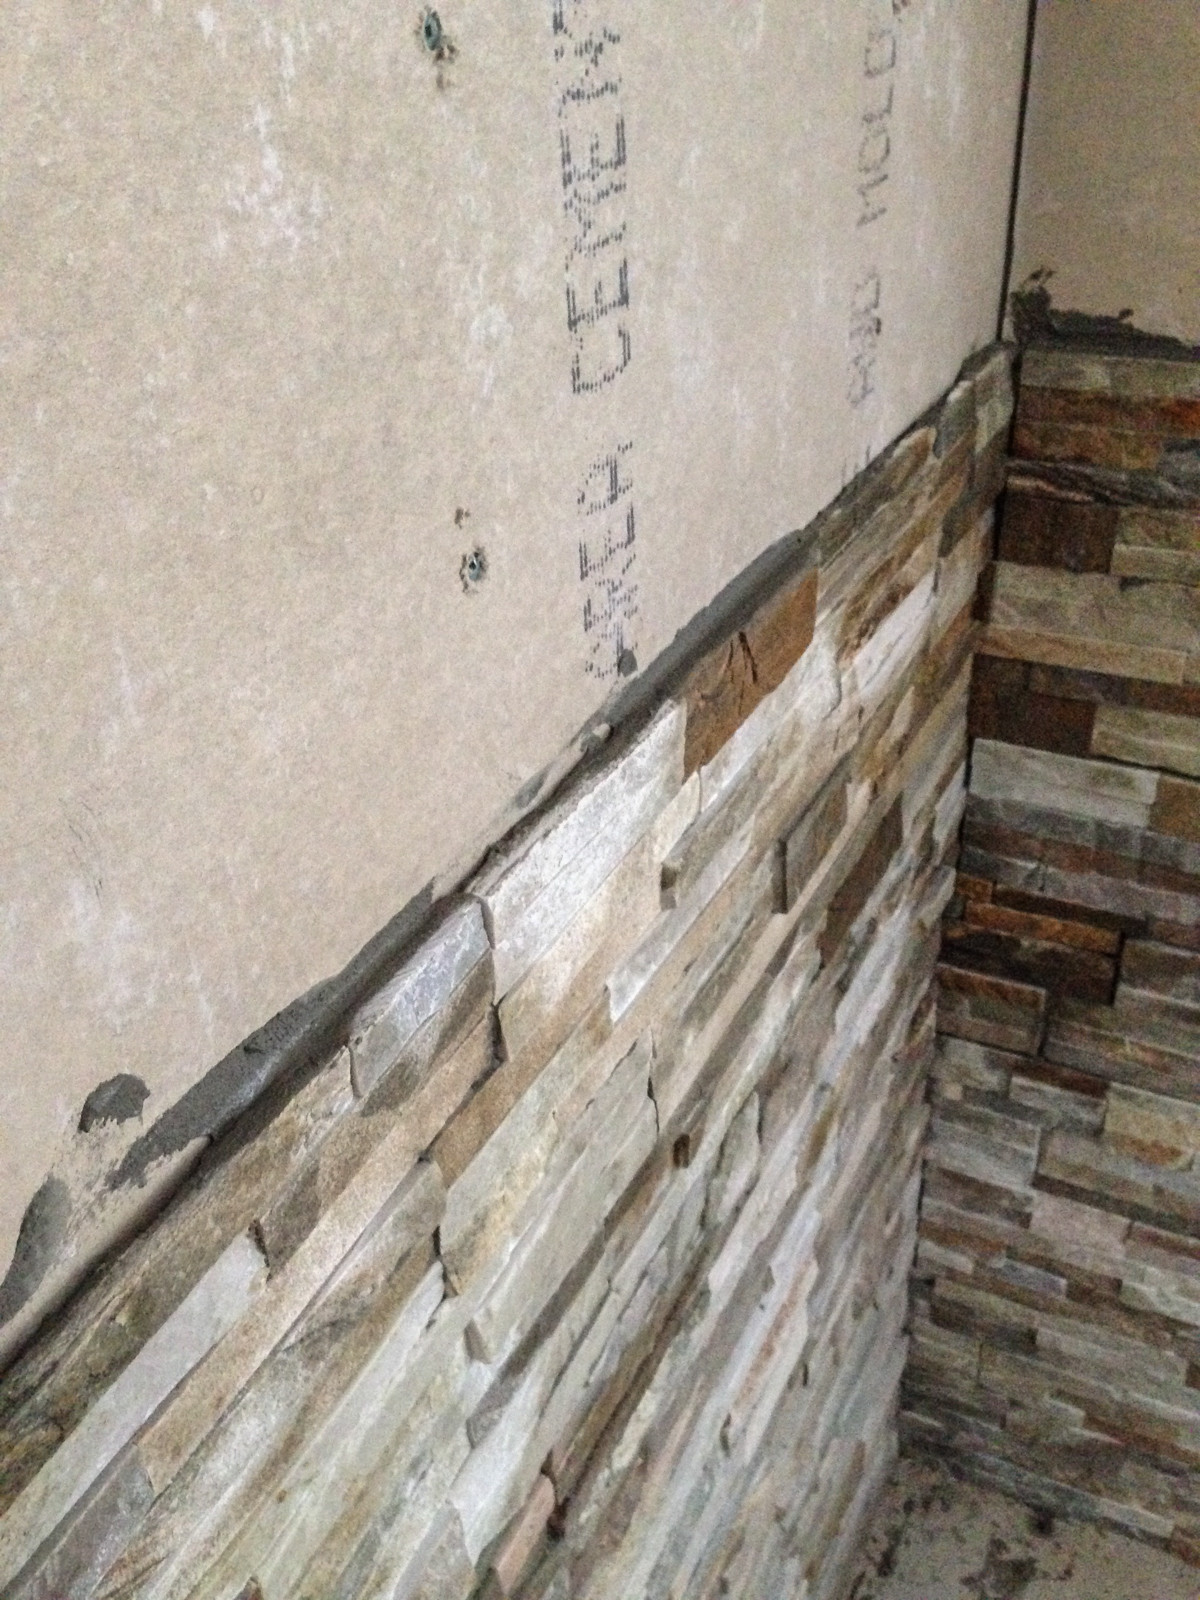 Best ideas about DIY Stone Wall Behind Wood Stove . Save or Pin How to Install a Wood Stove in Your Manufactured Home Now.